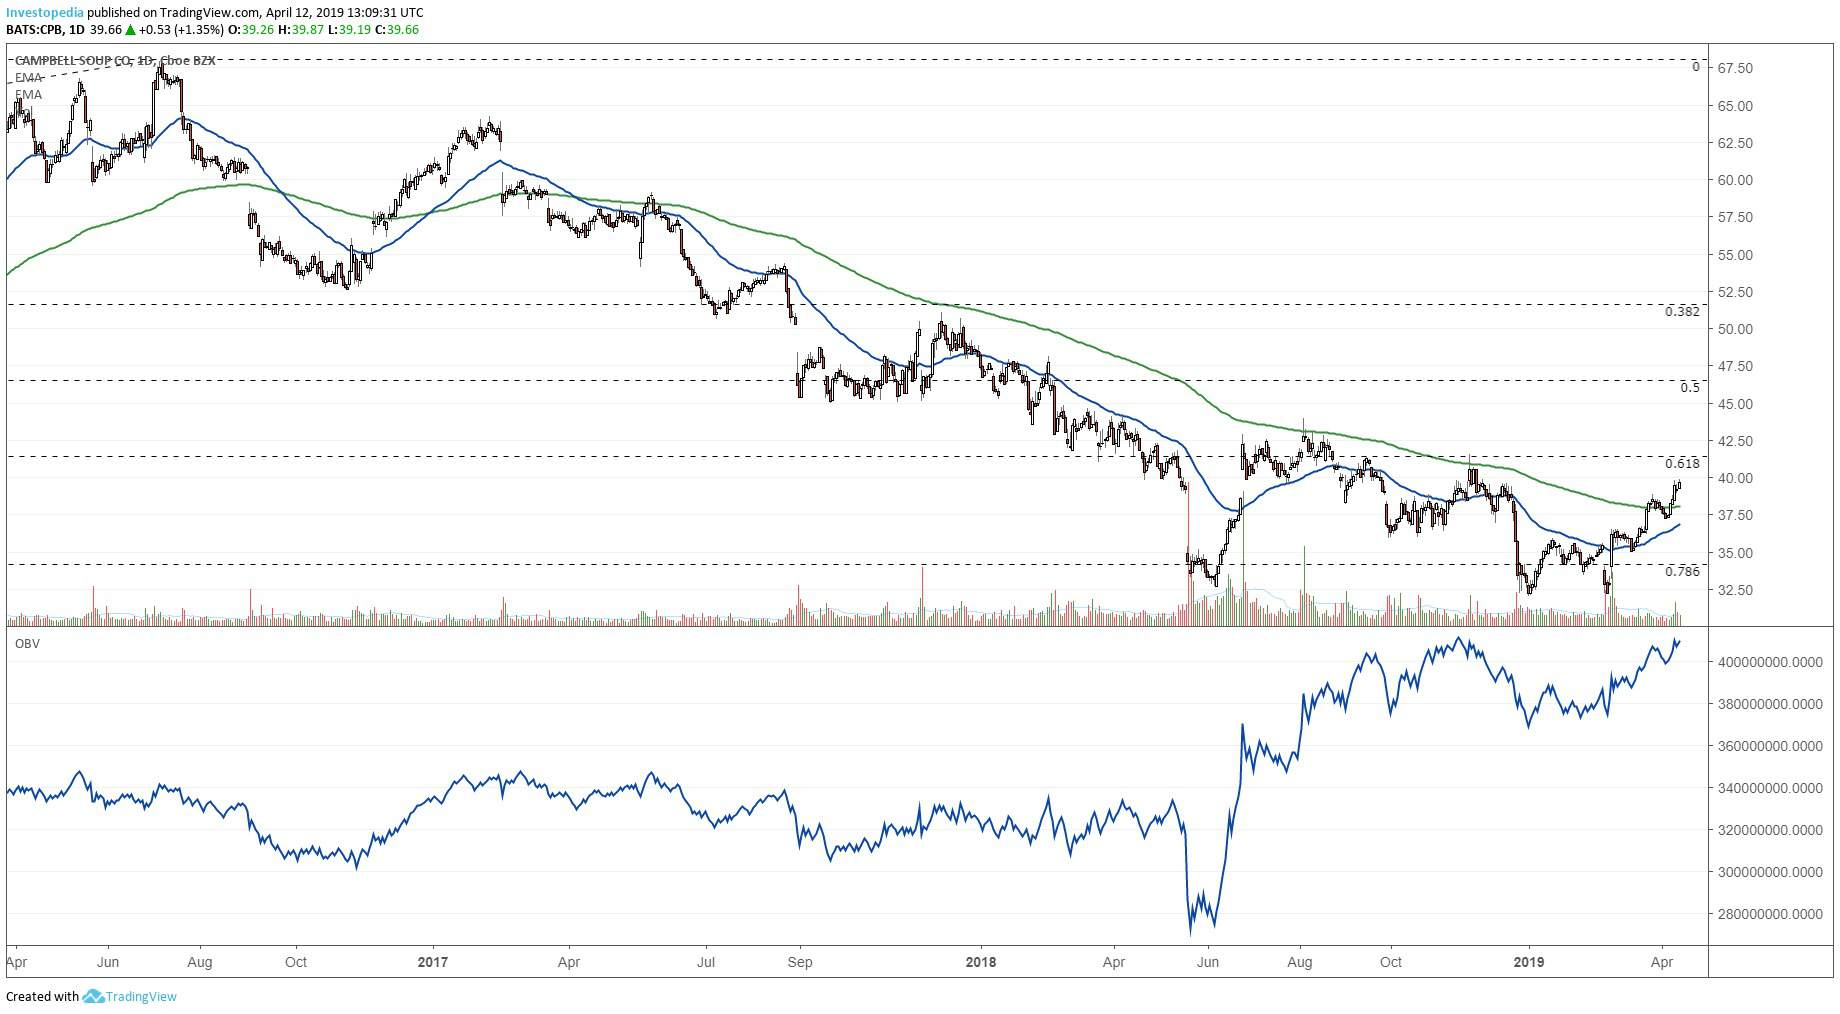 short-term chart showing the share price performance of campbell soup  company (cpb)